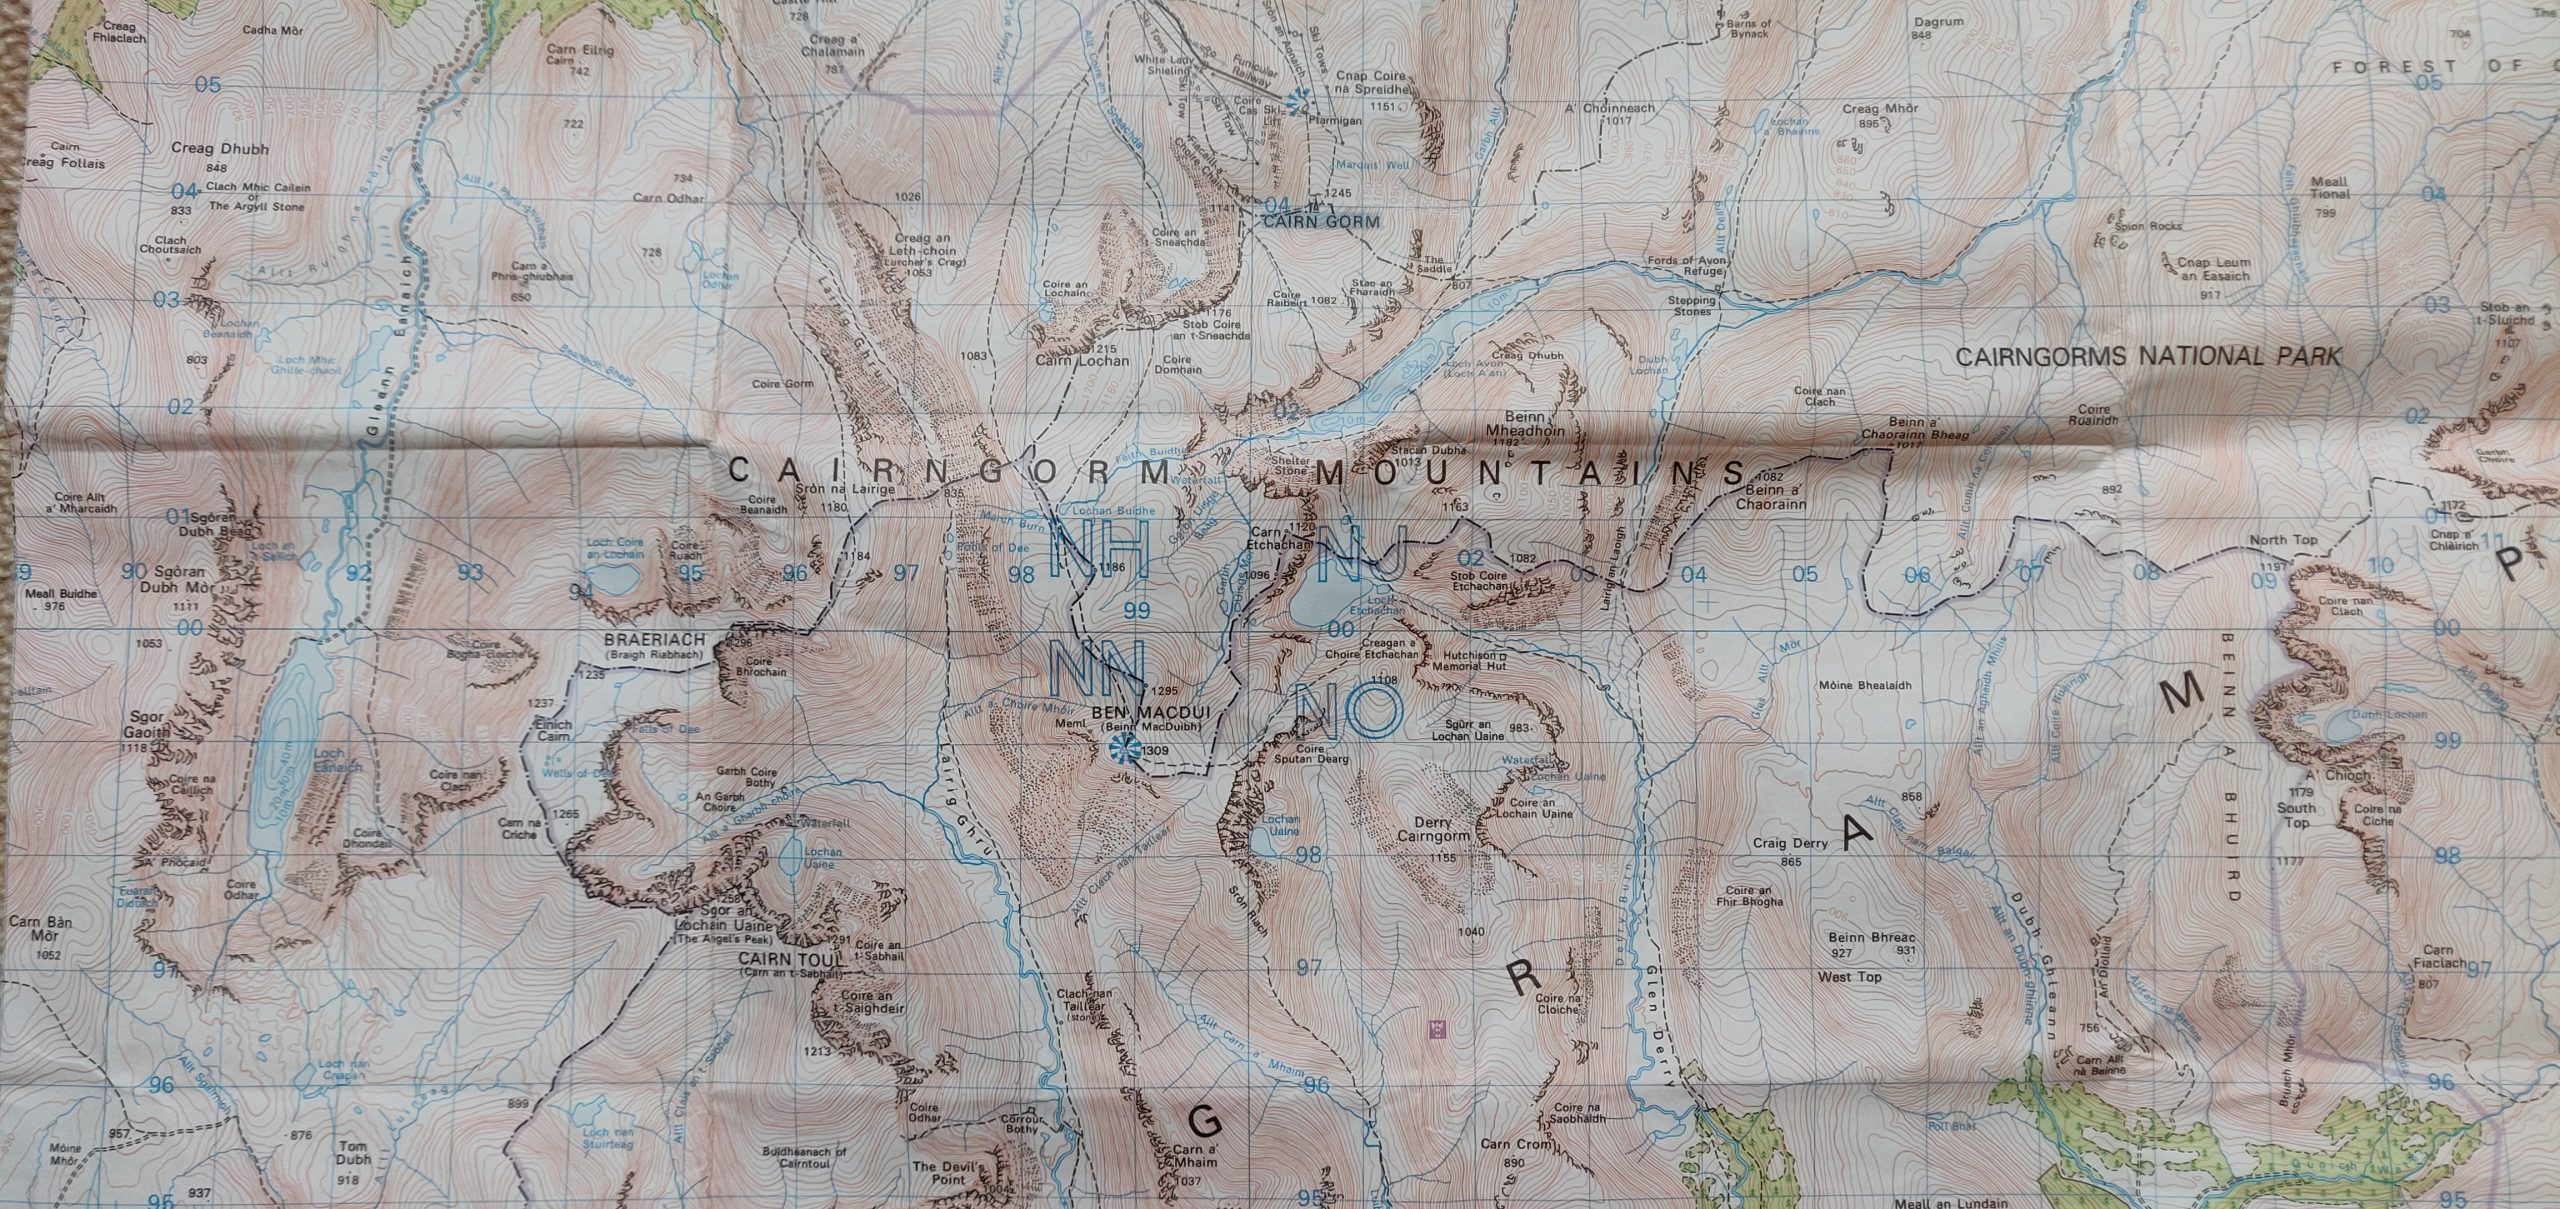 OS map of Cairngorm Mountains